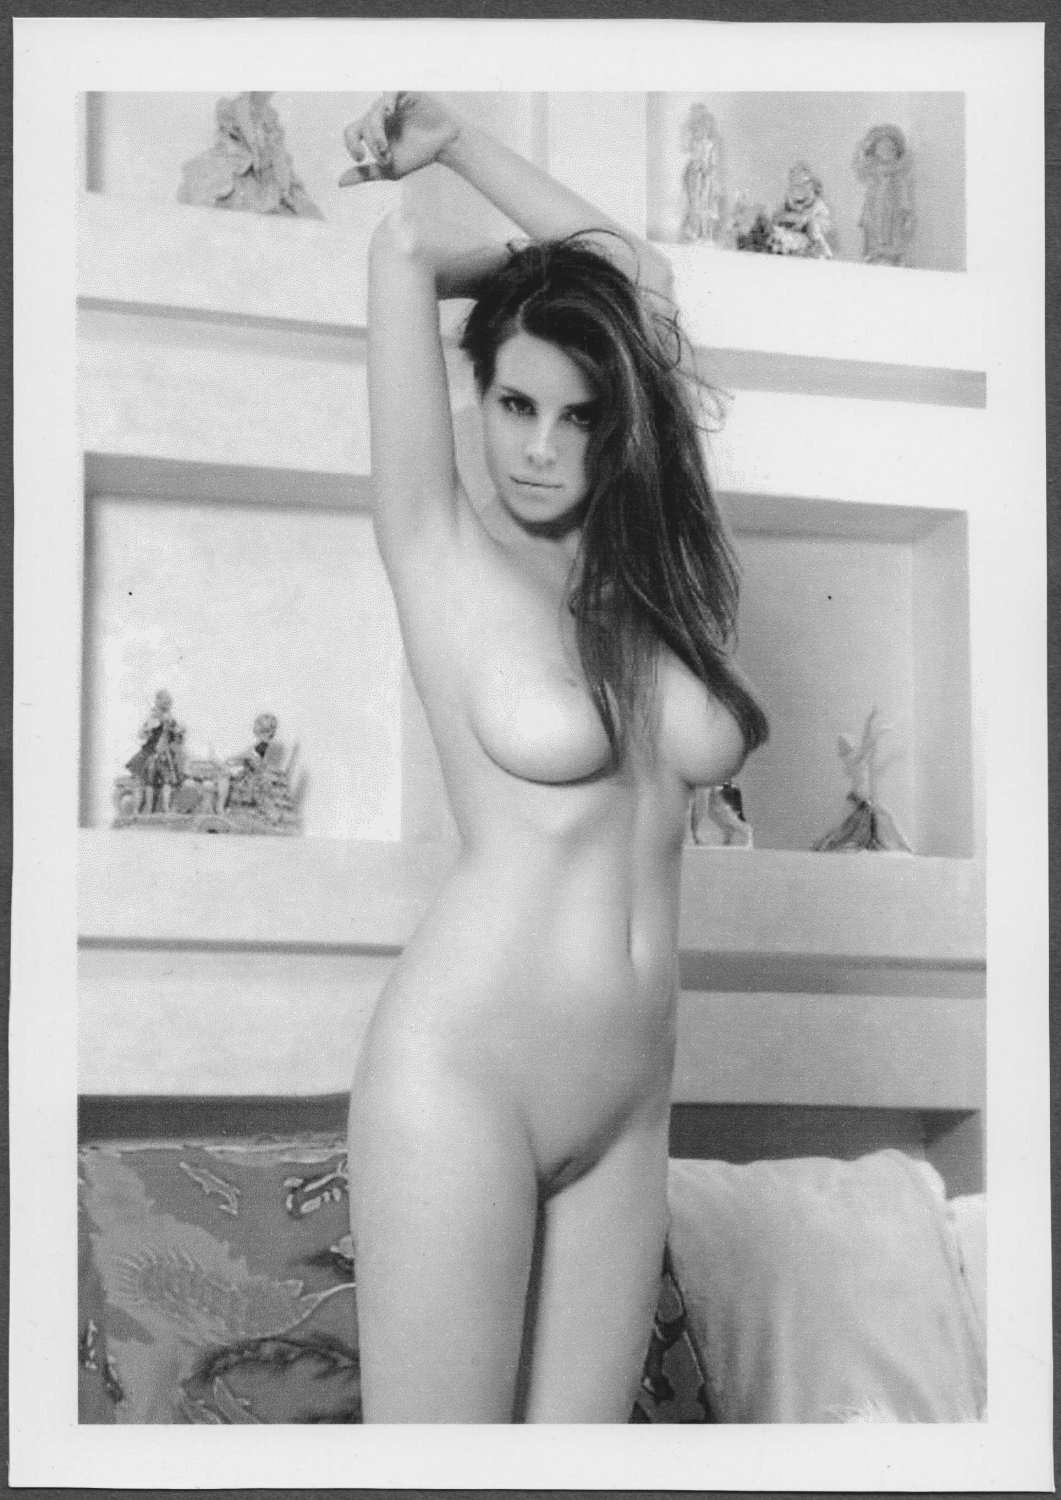 SINGER LANA DEL REY TOTALLY NUDE HUGE HEAVY BREASTS BARE PUSSY PHOTO 5X7 REPRINT #1